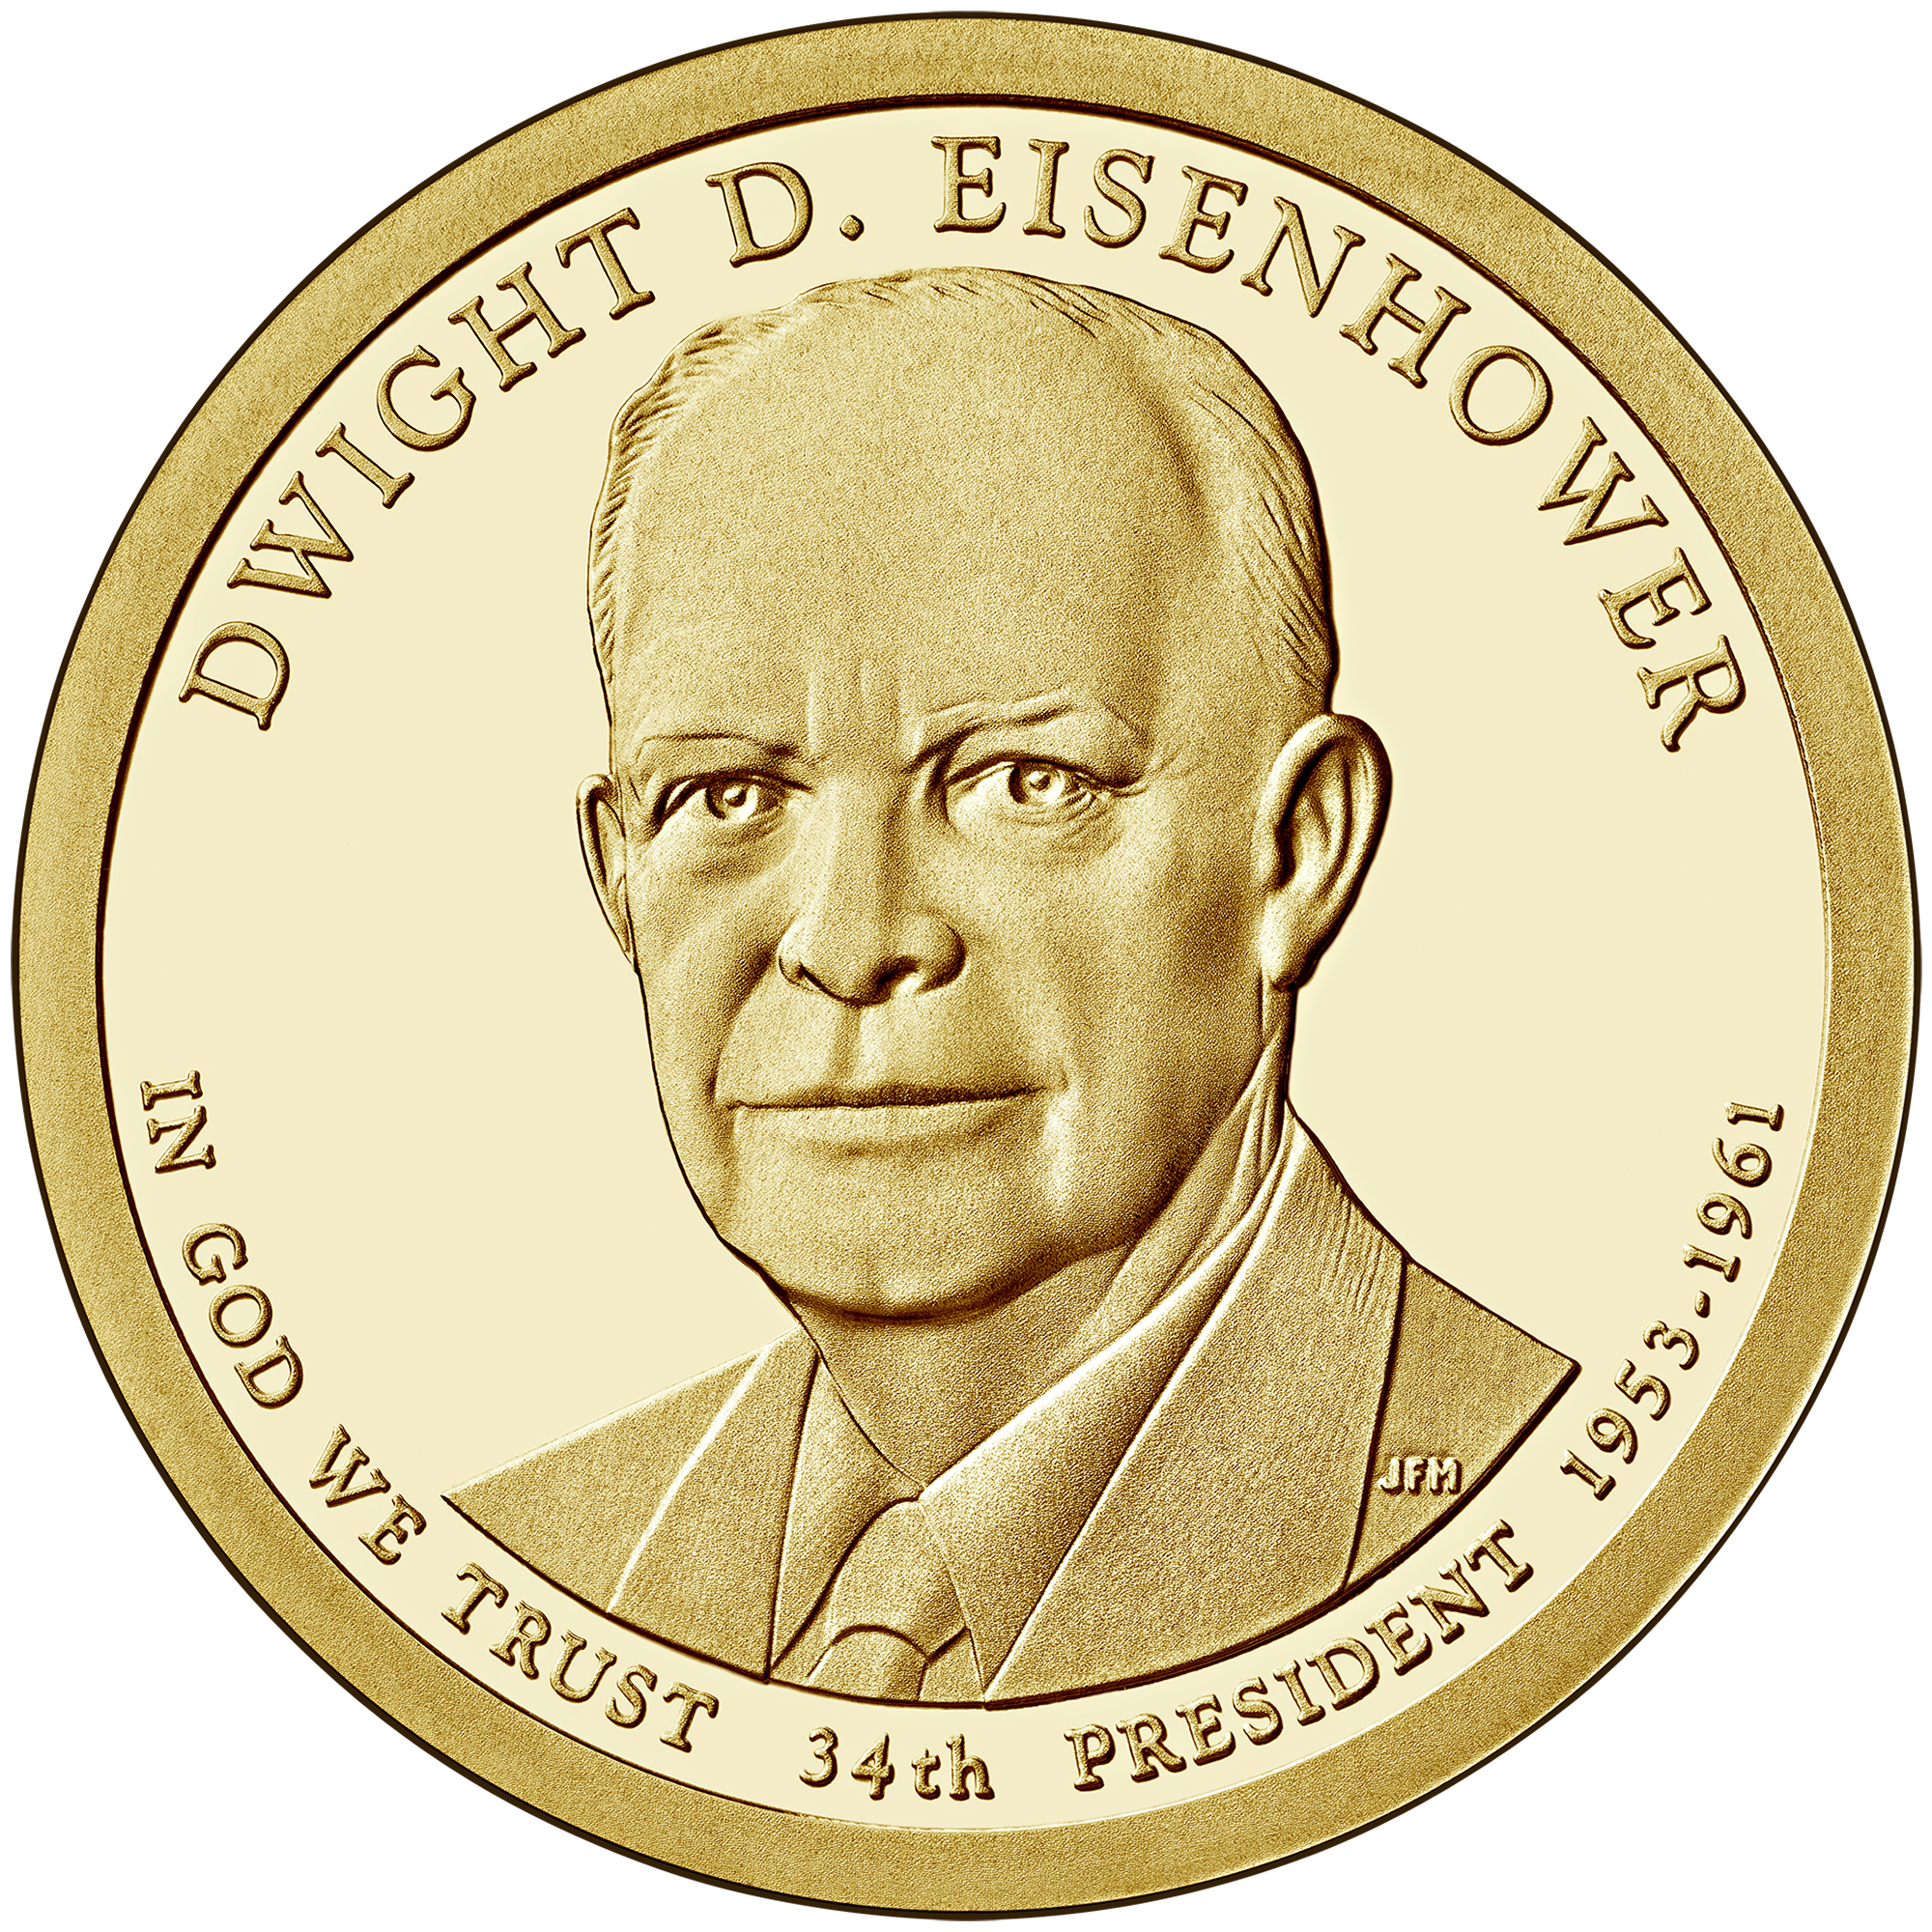 2015 Presidential Dollar Coin Dwight D. Eisenhower Proof Obverse